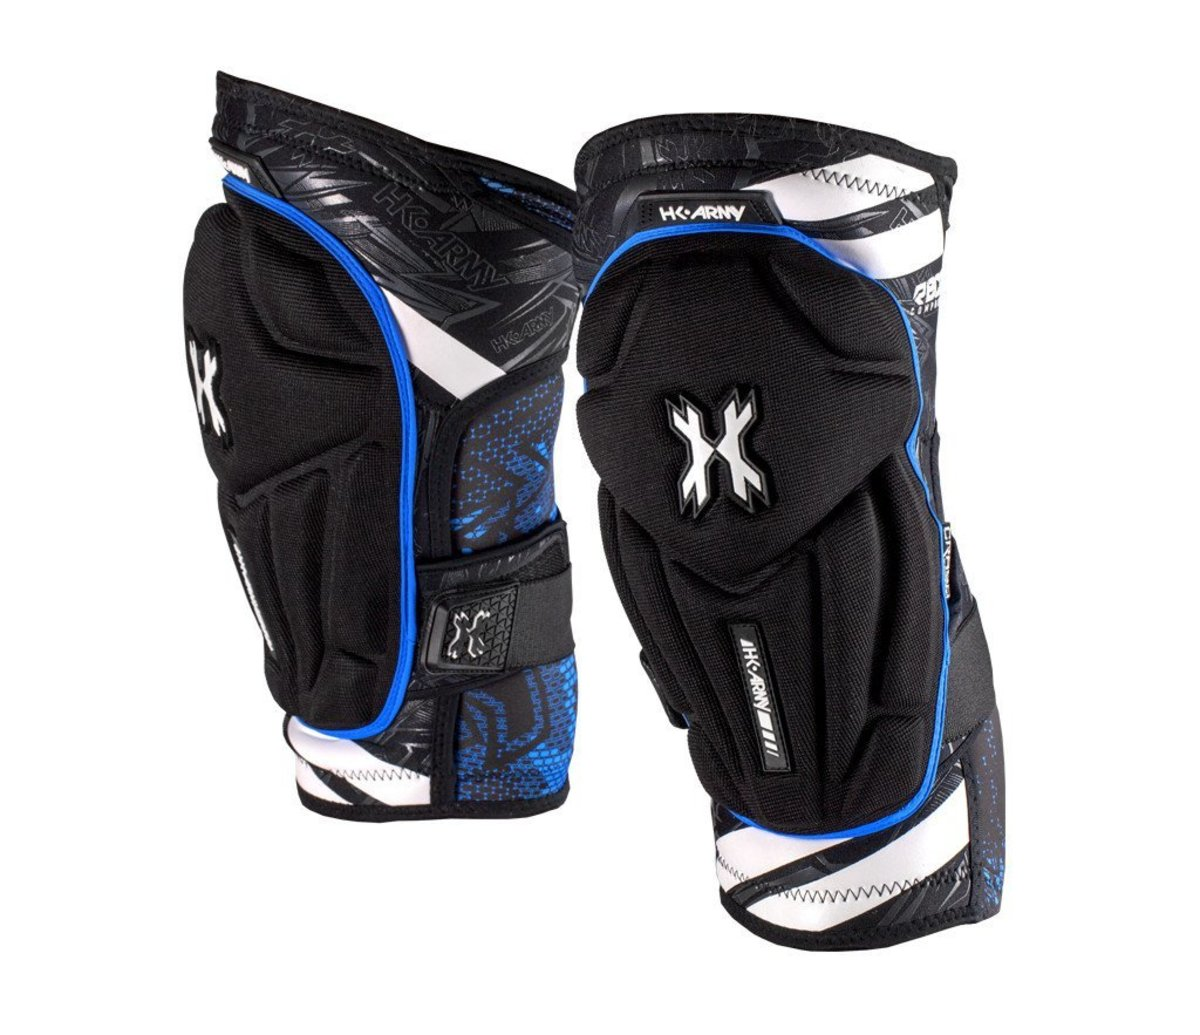 View larger image of HK Army Crash Paintball Knee Pads